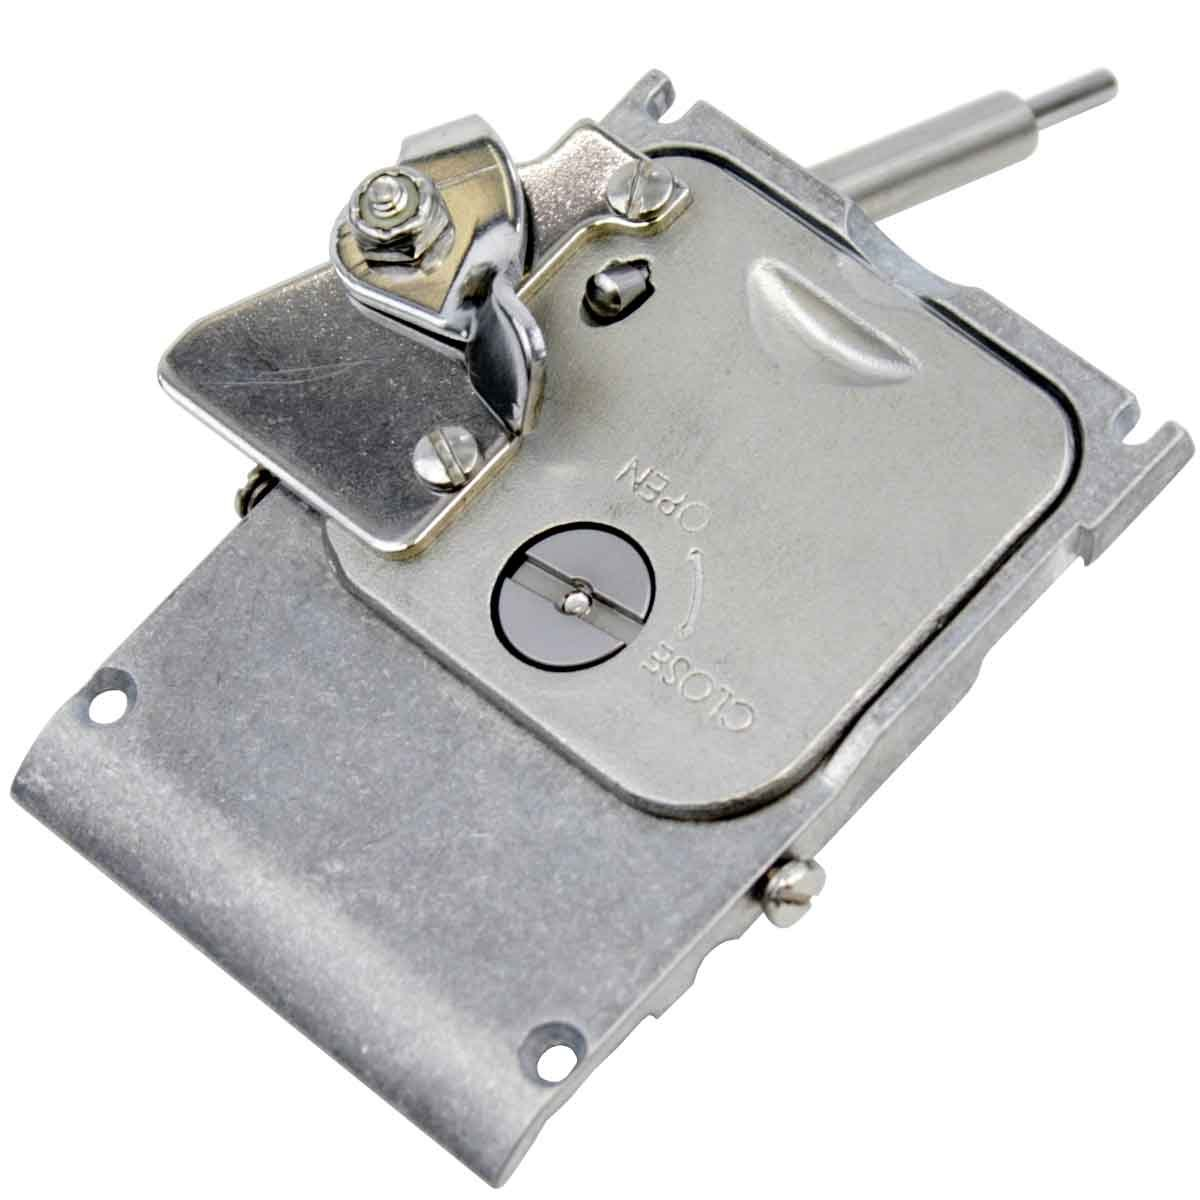 TapeTech Automatic Taper 05TT EasyClean Cover Plate Conversion - Upgrade to 07TT Style